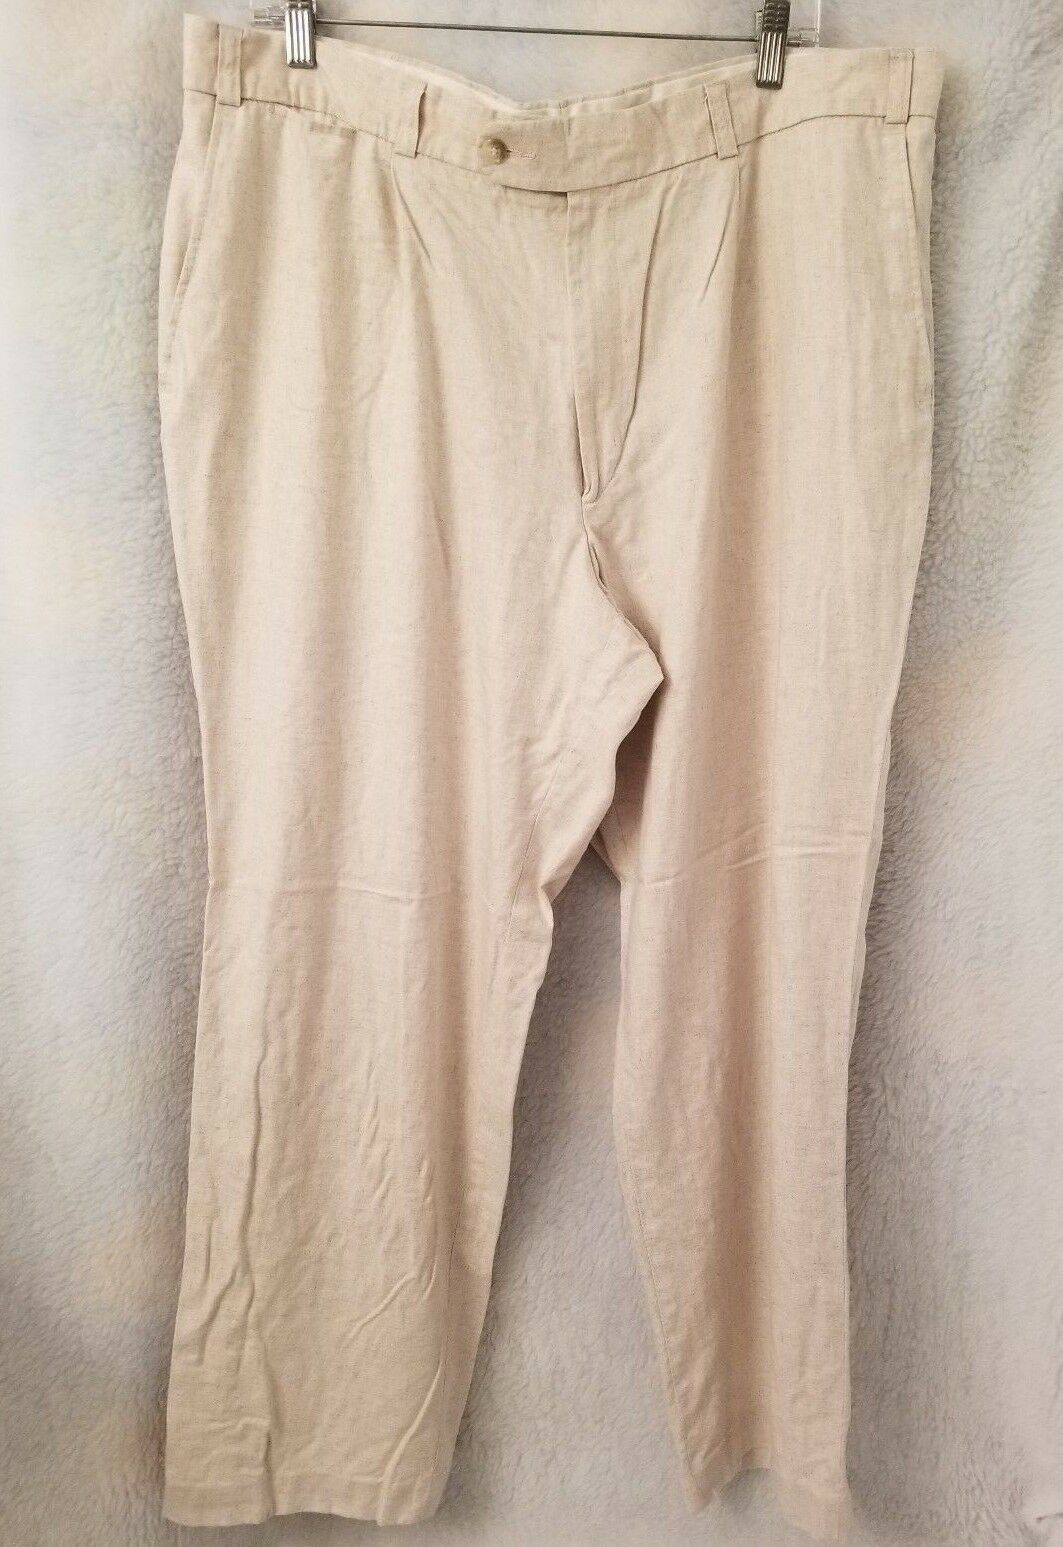 Canda Mens Light Brown 20% Linen Pleated Pants Size 54 80 (40 x 29.5)